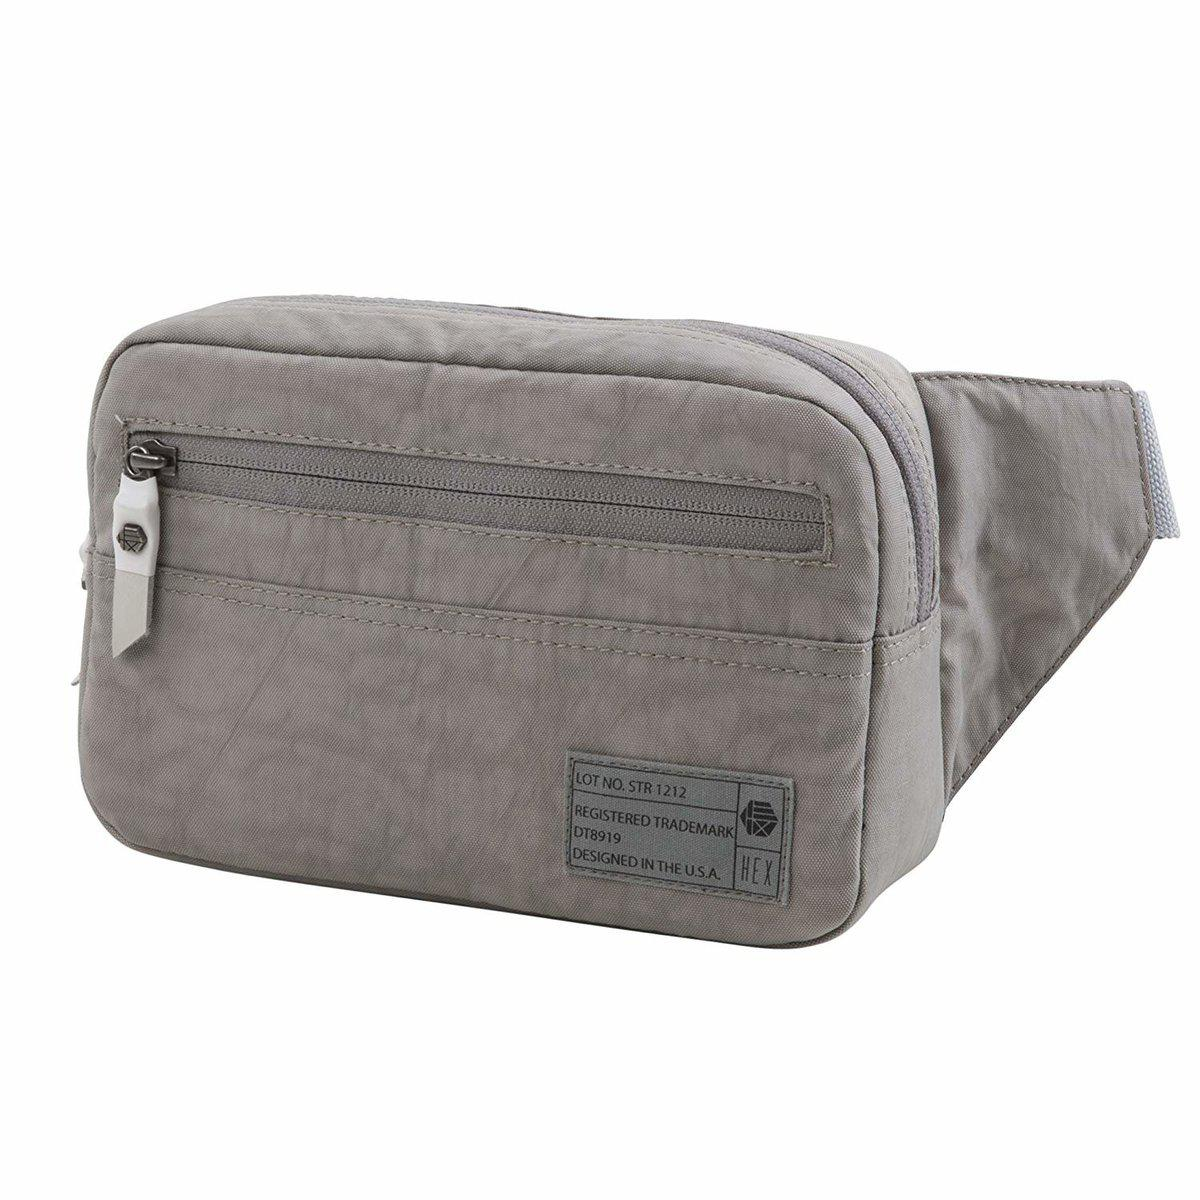 c84ee9723c0 Hex. Women's Gray Waist Pack. $35 From Paragon Sports